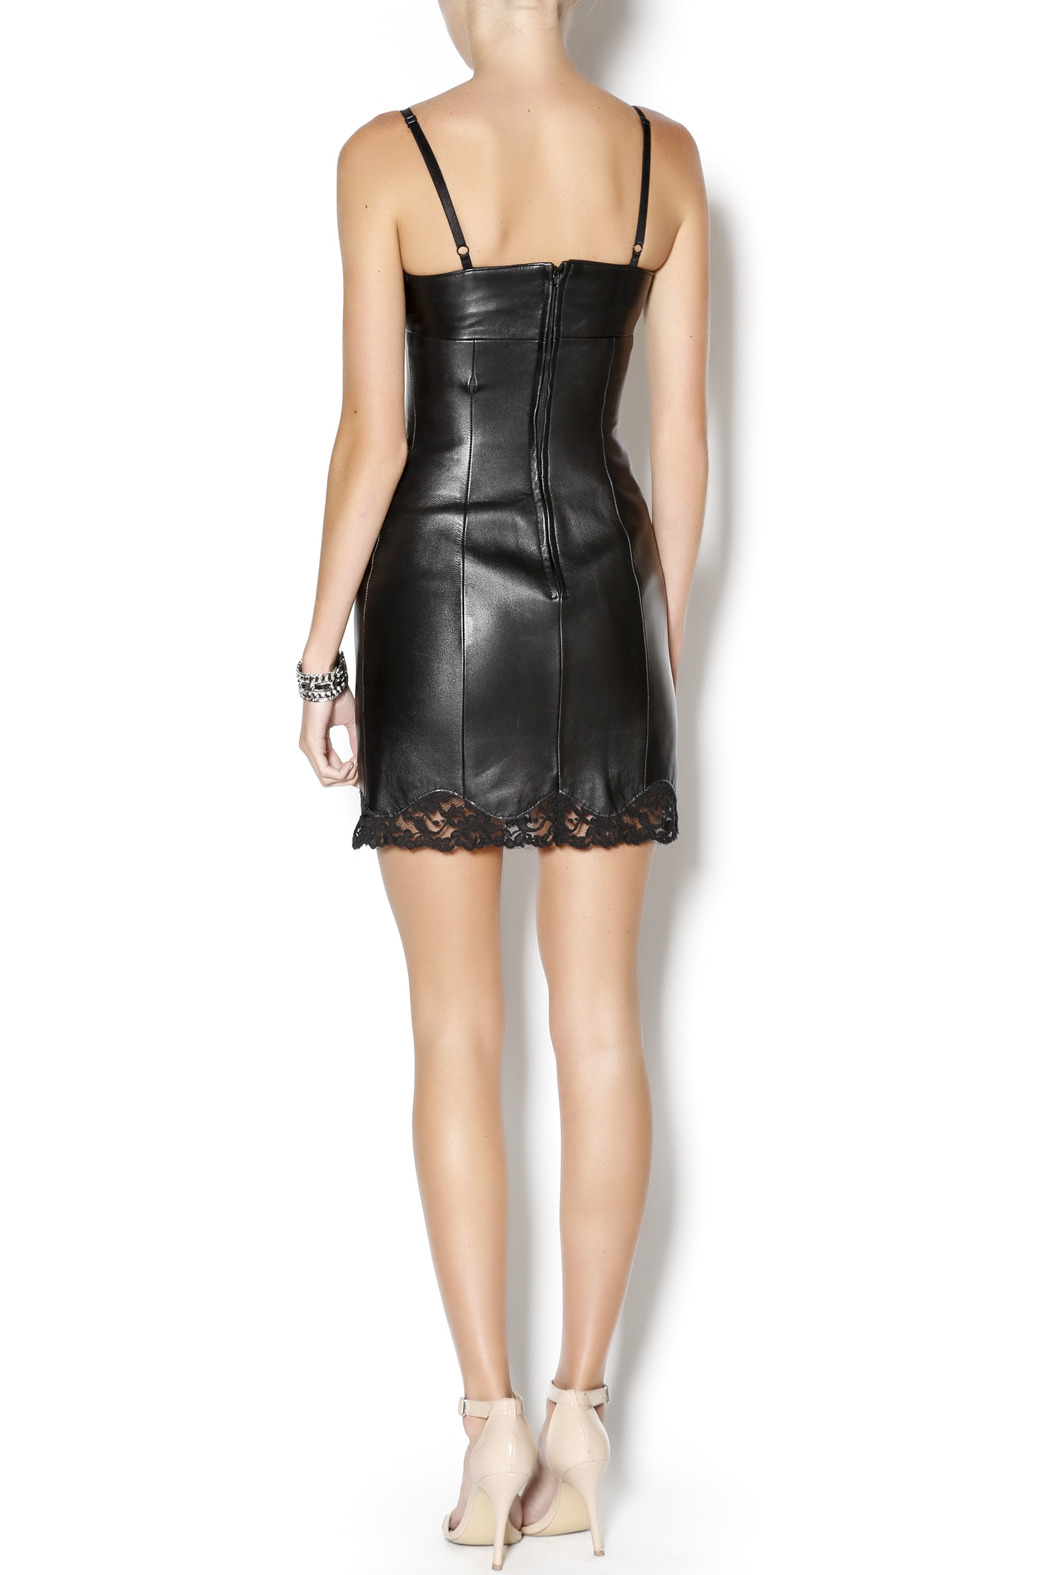 West Coast Leather Sweetheart Lace Leather Dress - Side Cropped Image